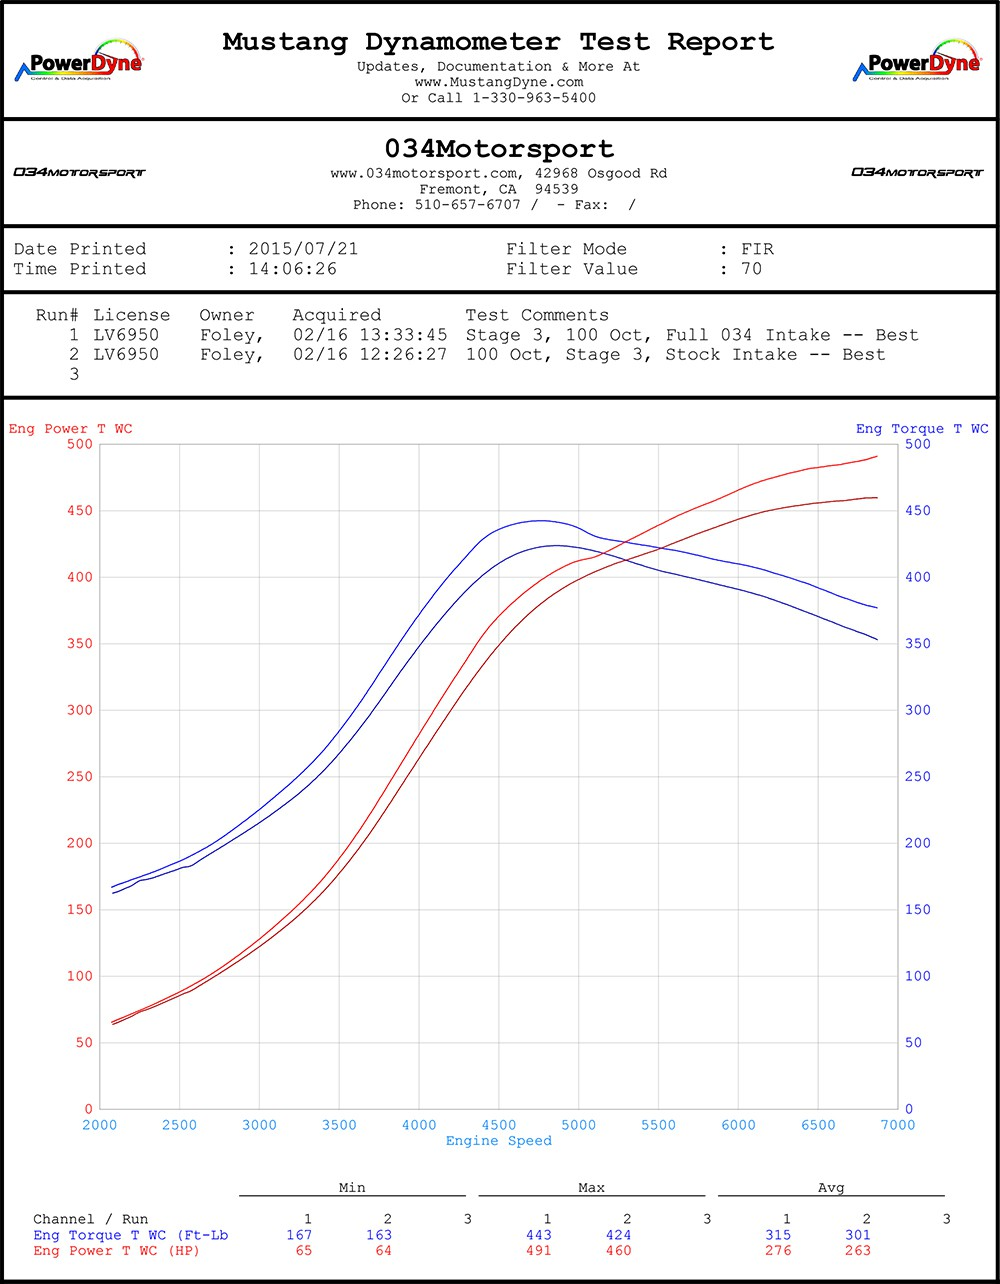 Audi Tt Rs Rs3 25 Tfsi X34 Carbon Fiber Cold Air Intake System 24v Vr6 Jetta Engine Diagram Stock Airbox Dyno Testing Vs